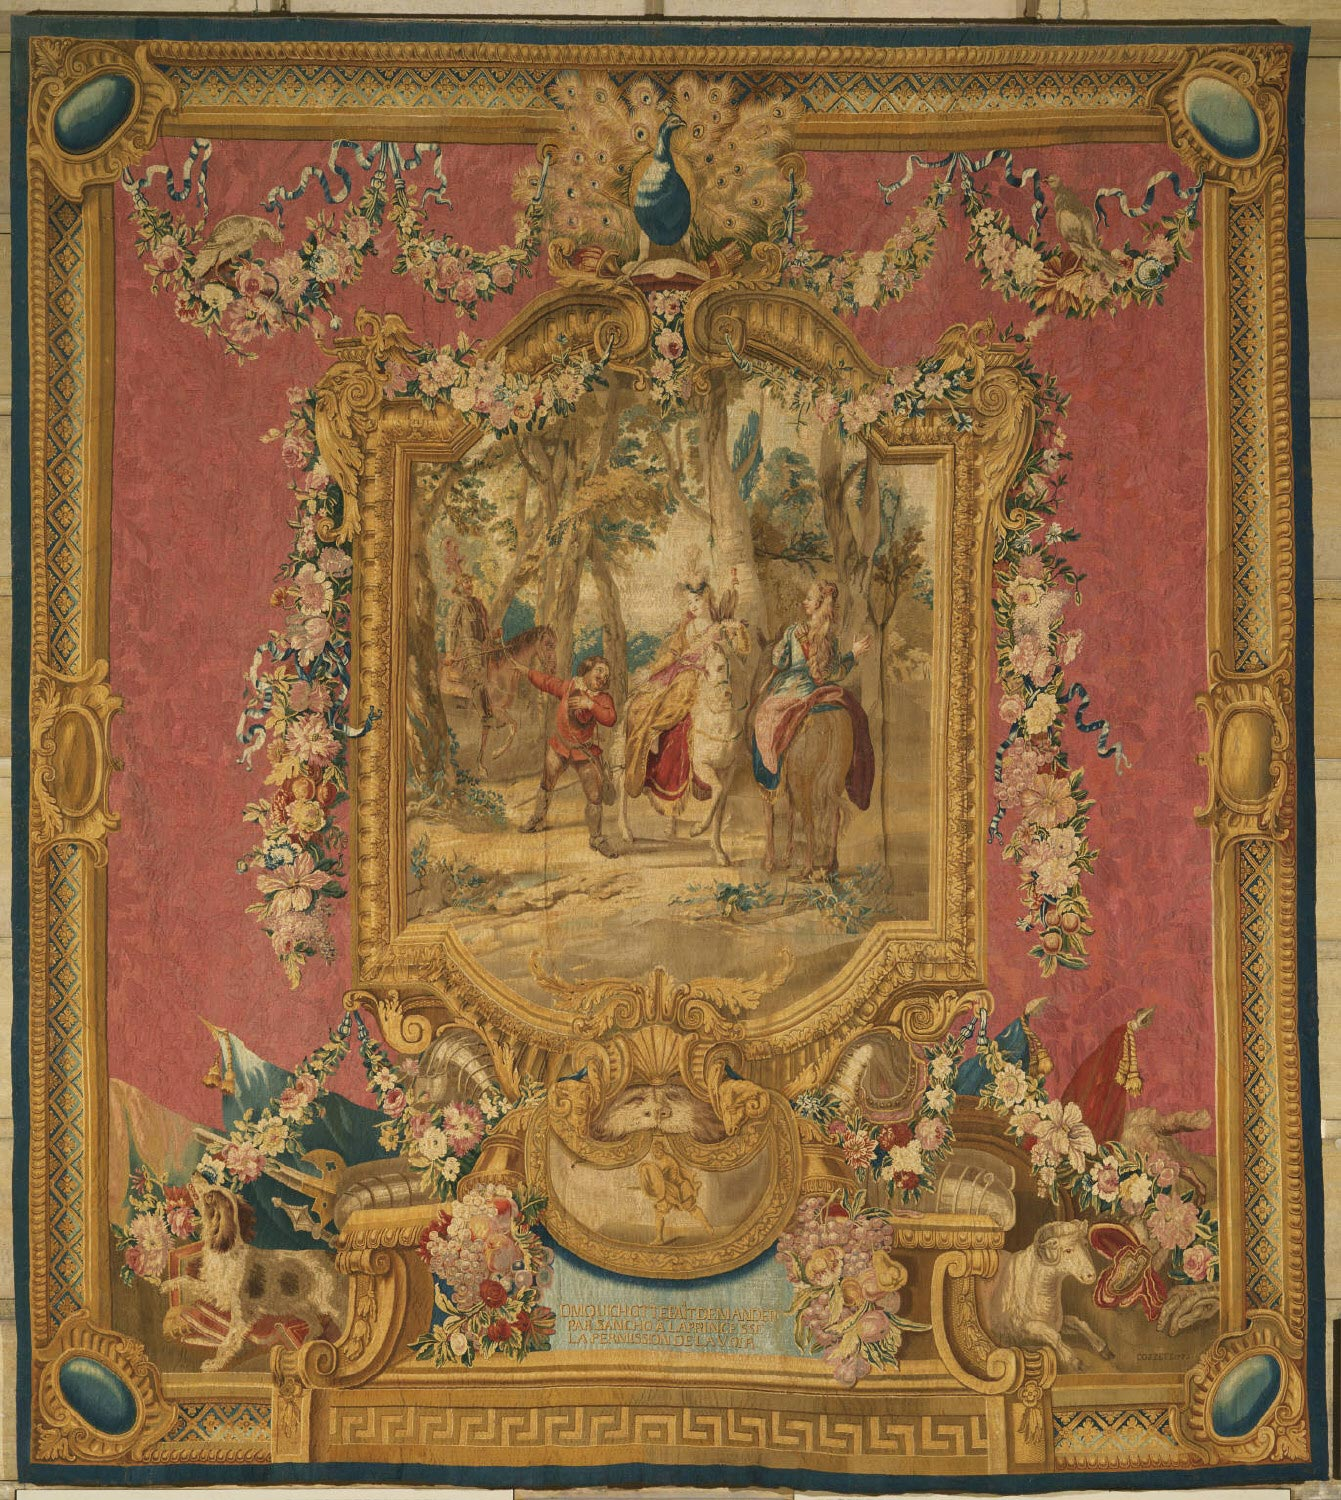 Tapestry showing Don Quixote Having Sancho Panza Ask the Princess's Permission to See Her